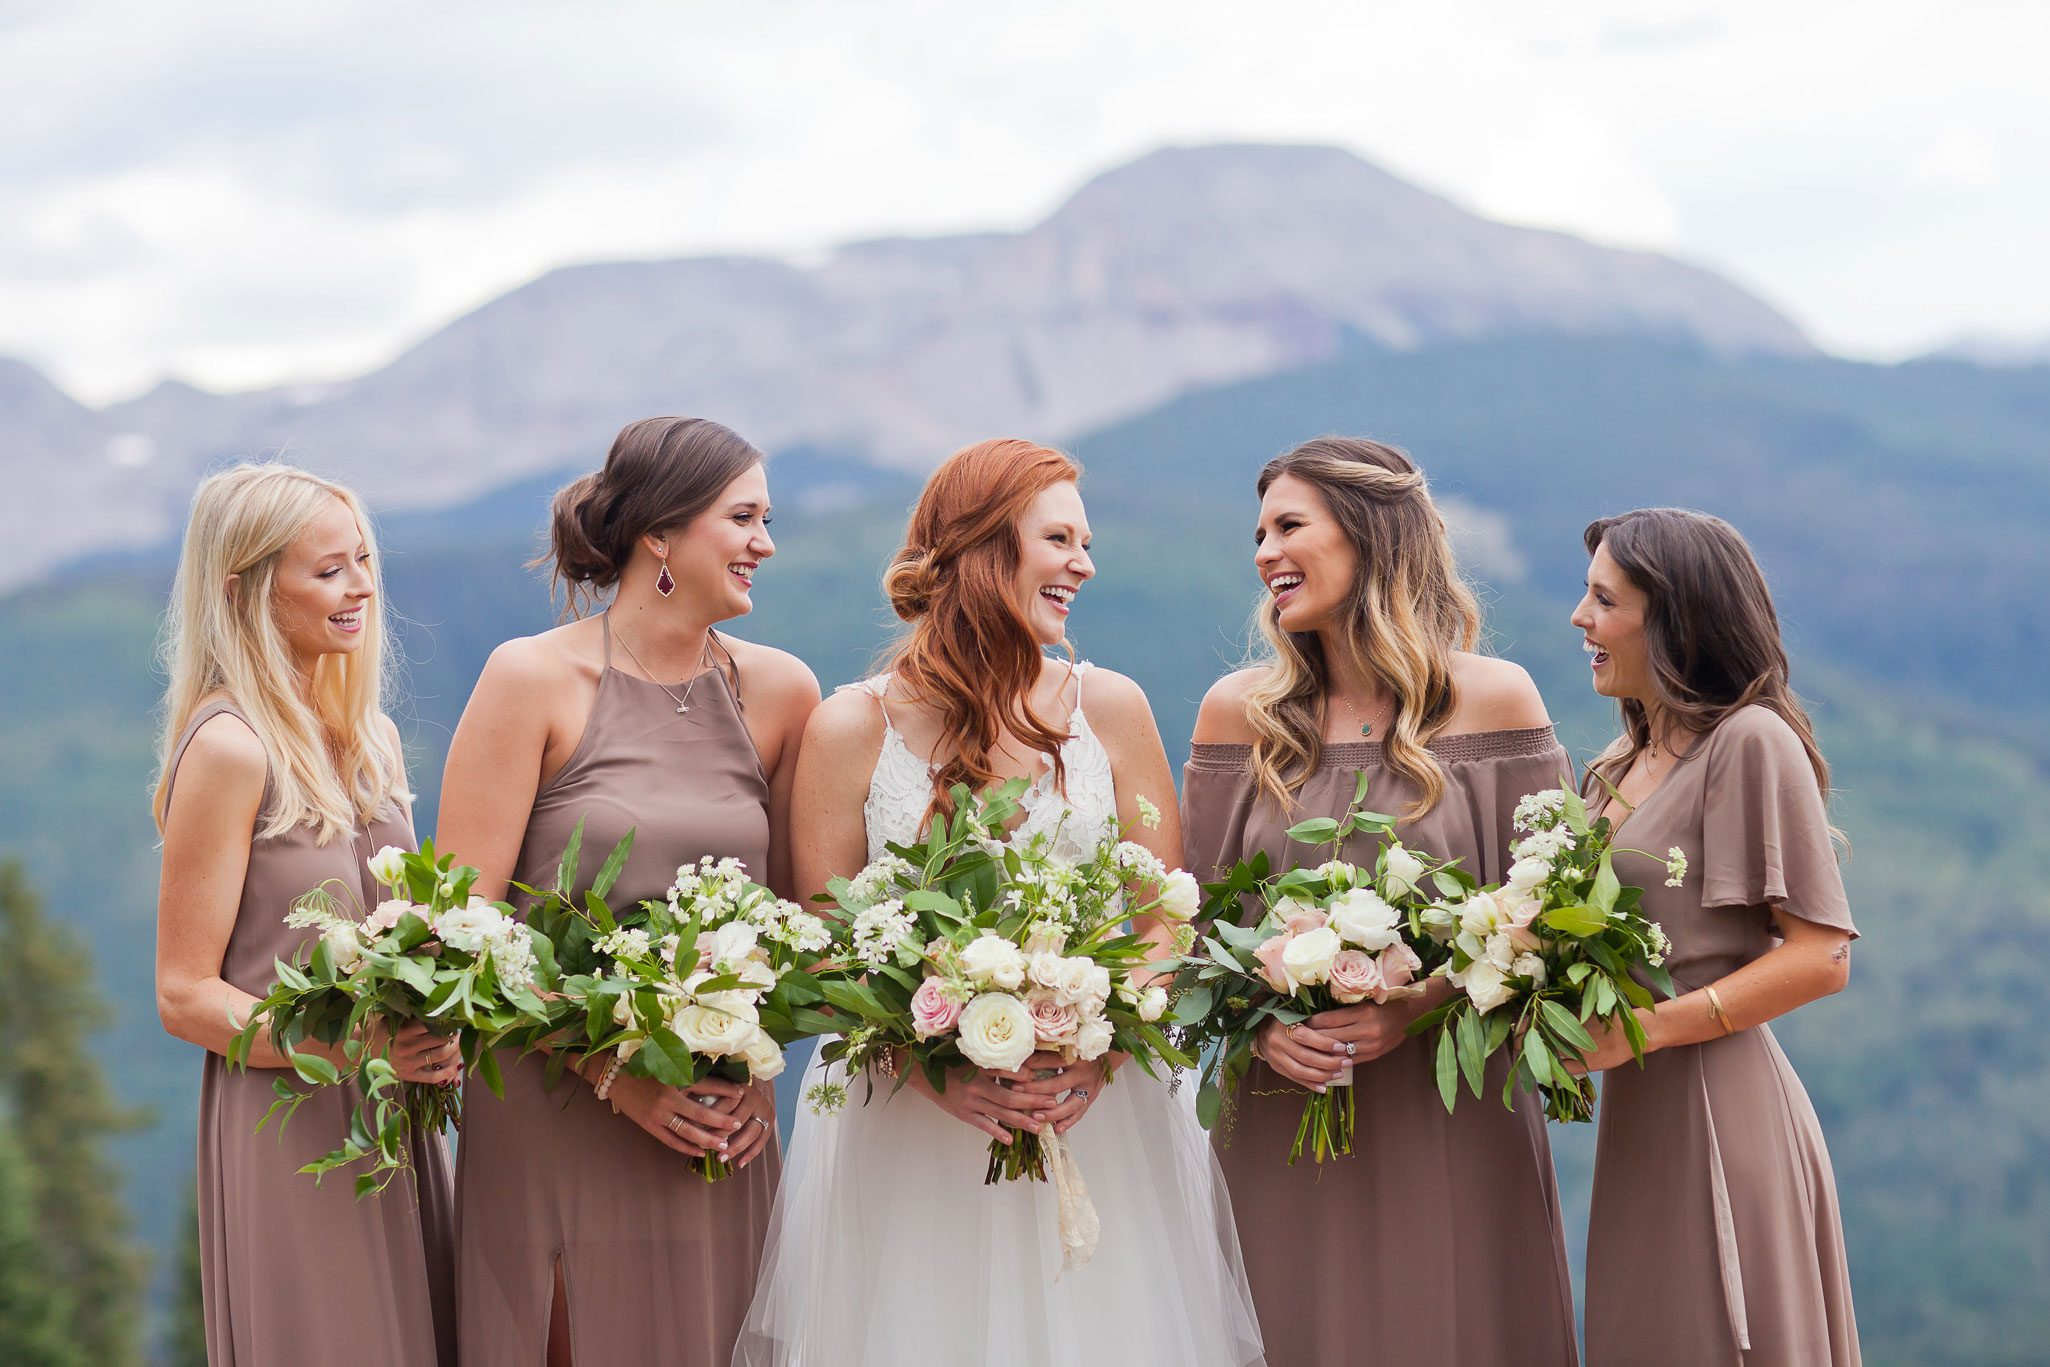 A Modern Mountaintop Destination Wedding at Purgatory Resort, Durango, Colorado